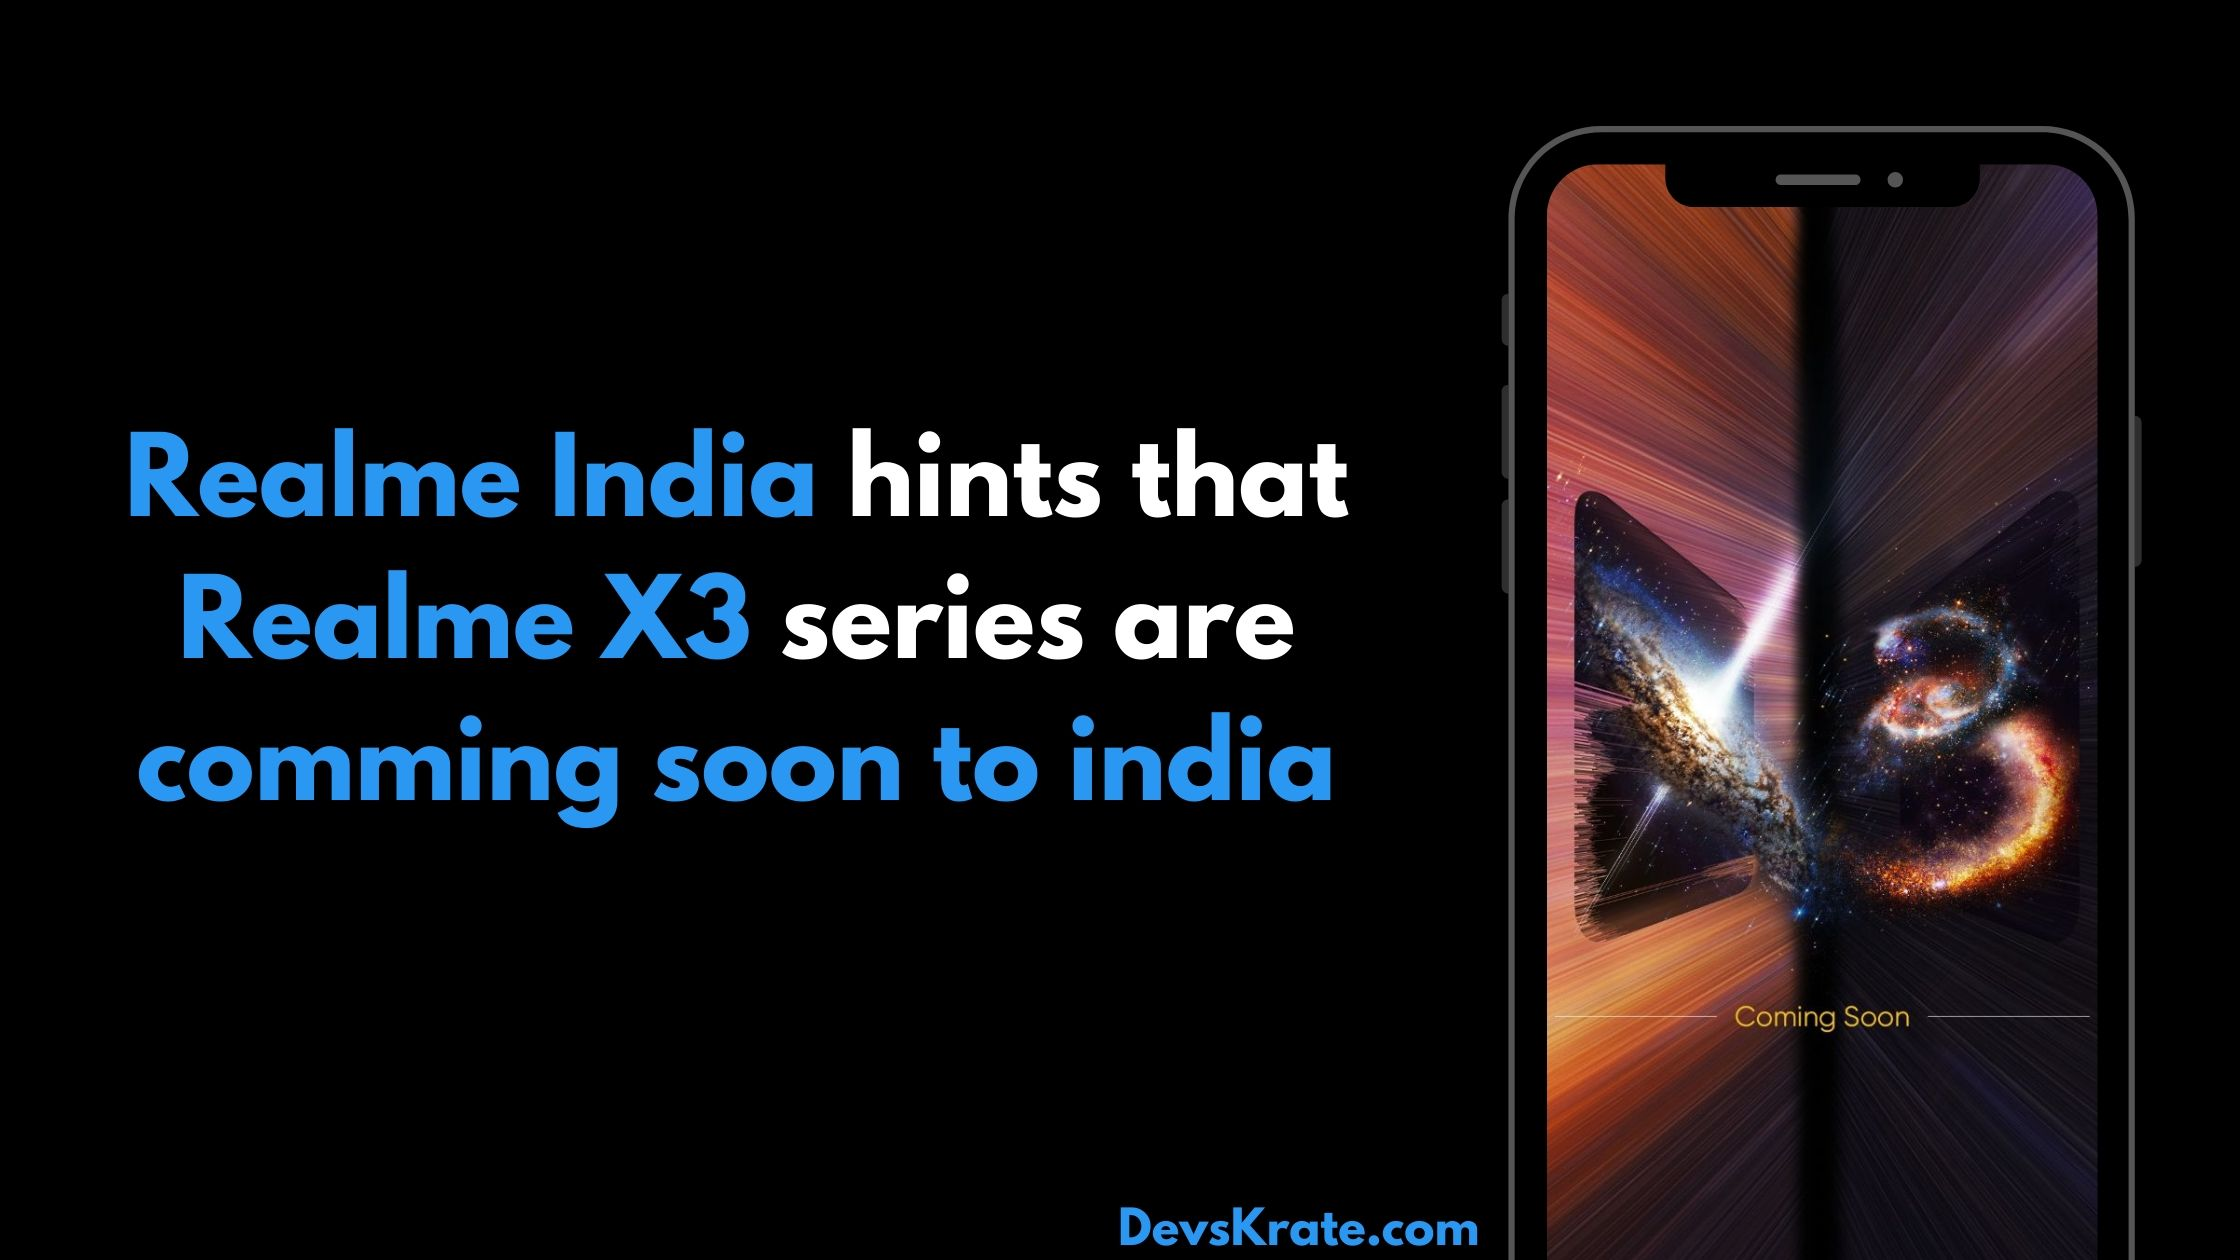 Realme X3 series coming to India